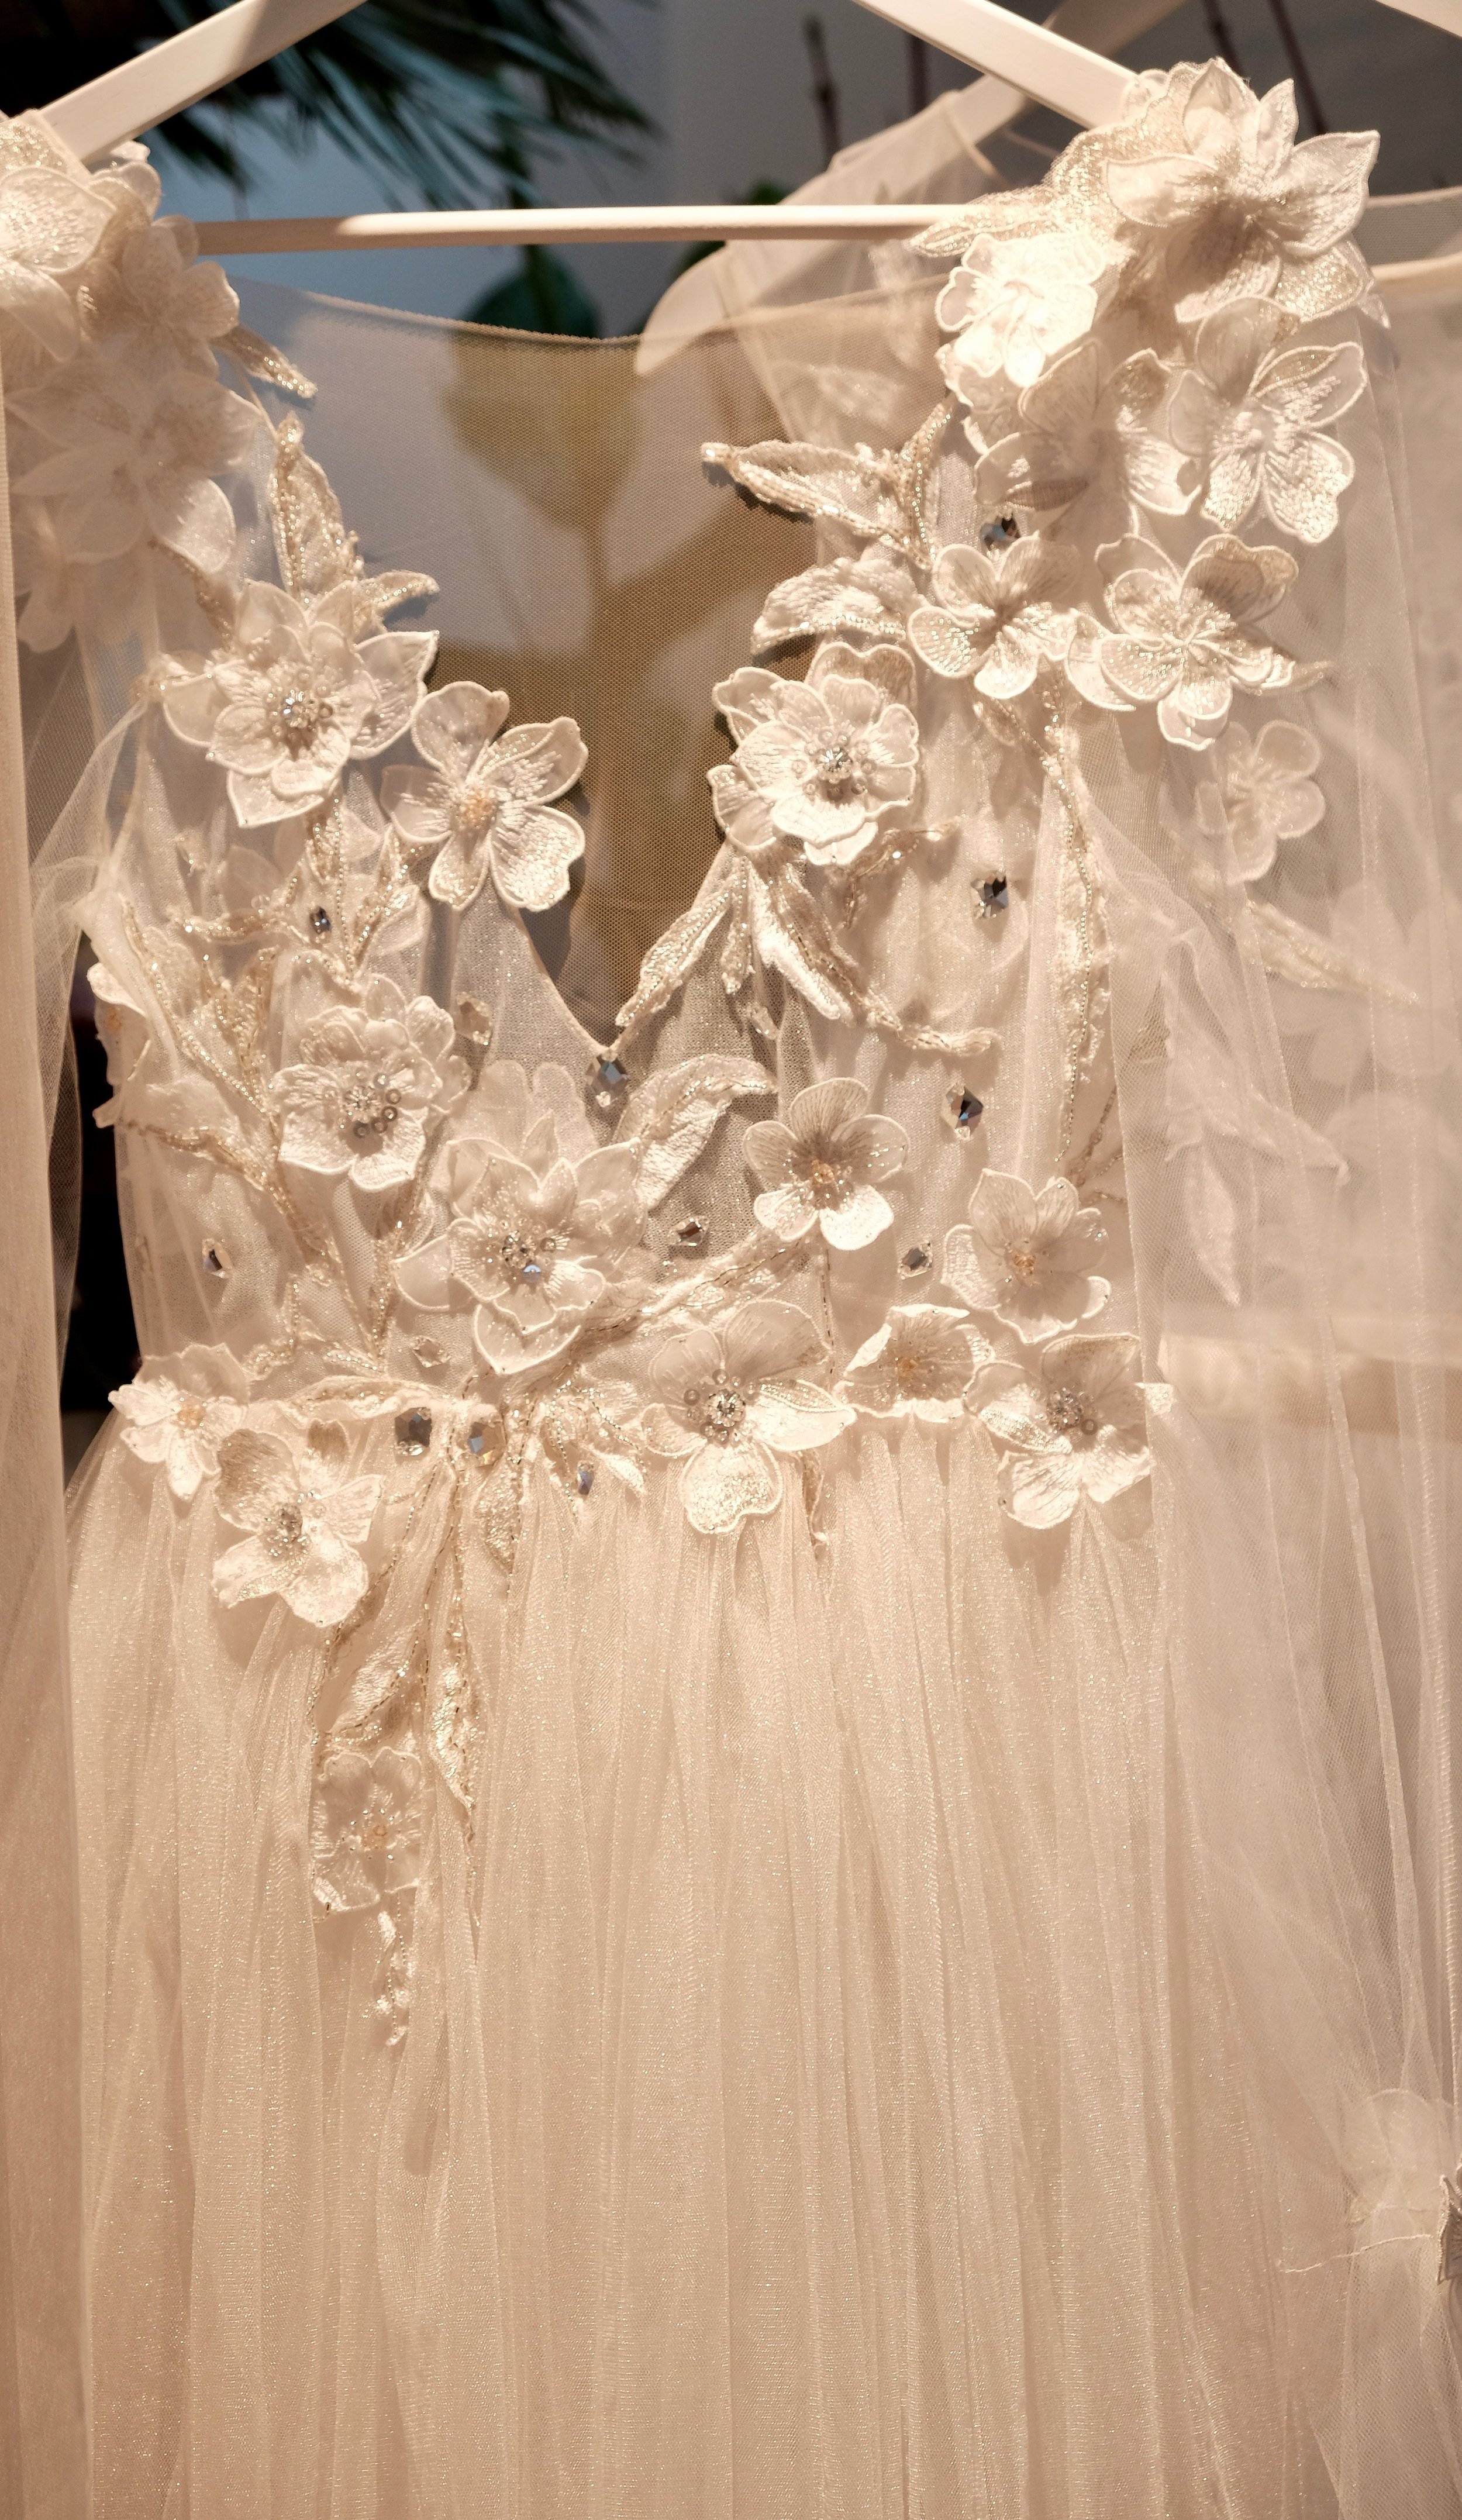 Intricate floral bridal gown (above and below) from    Ulyana Aster